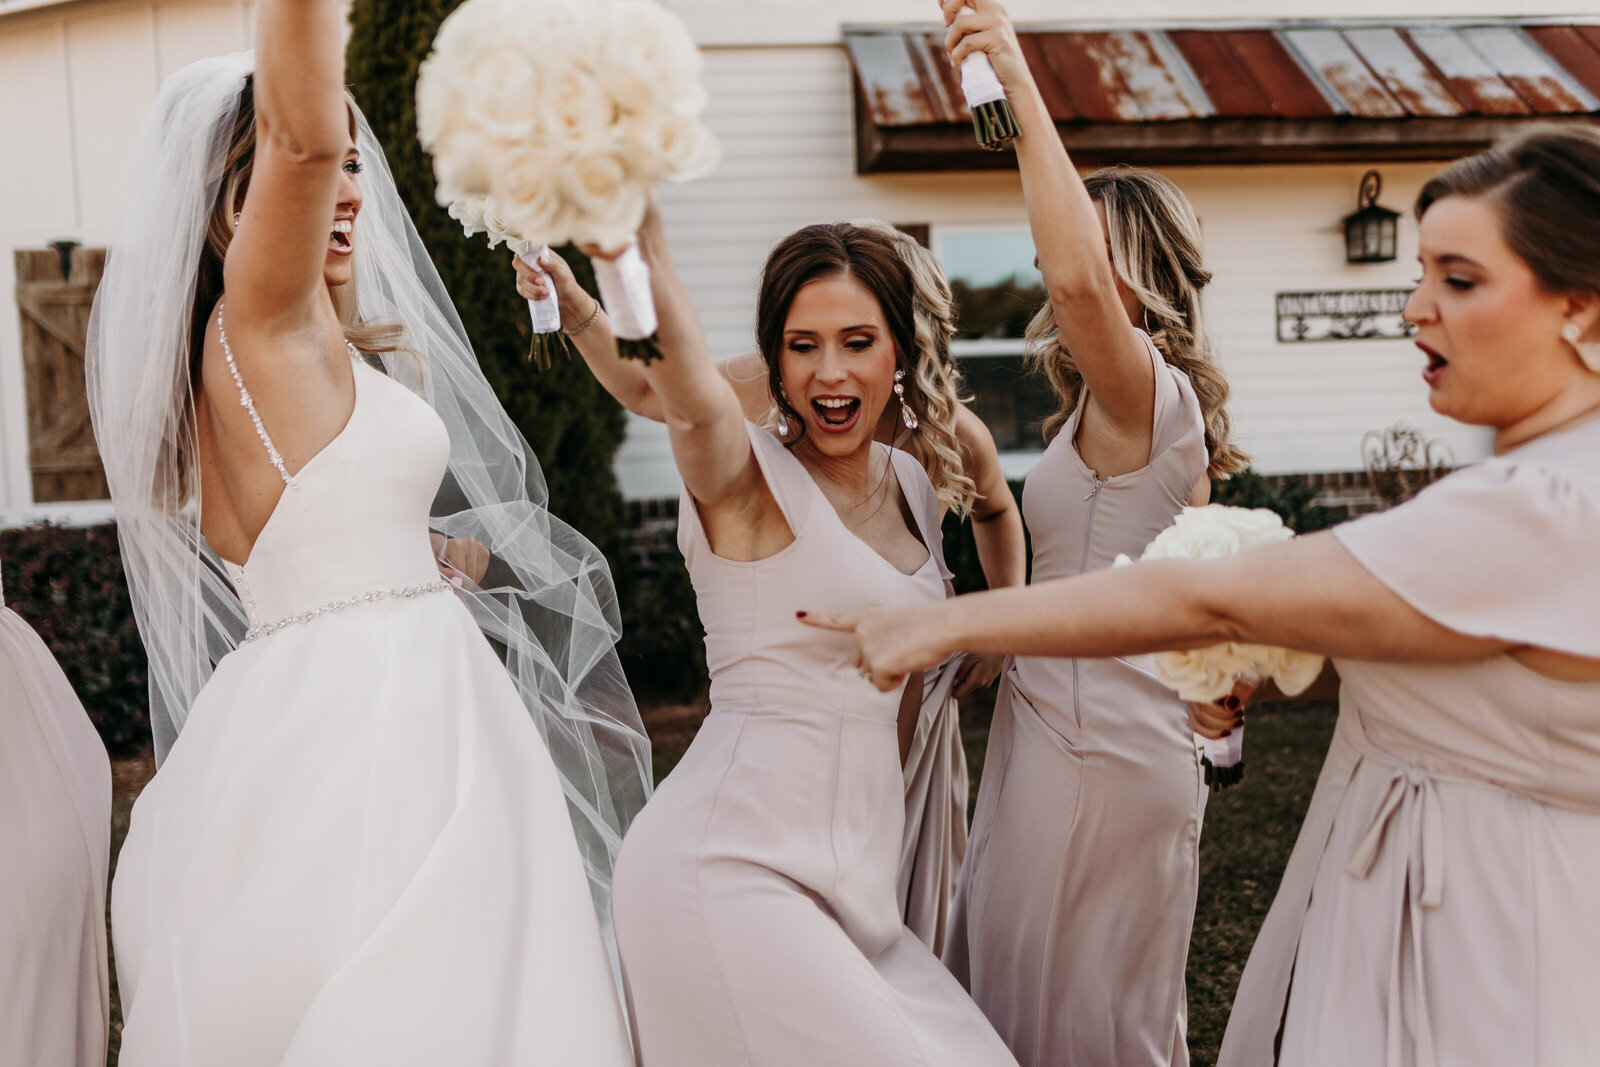 J.Michelle Photography photographs bridesmaids dance at vintage oaks farm wedding in Athens, Ga